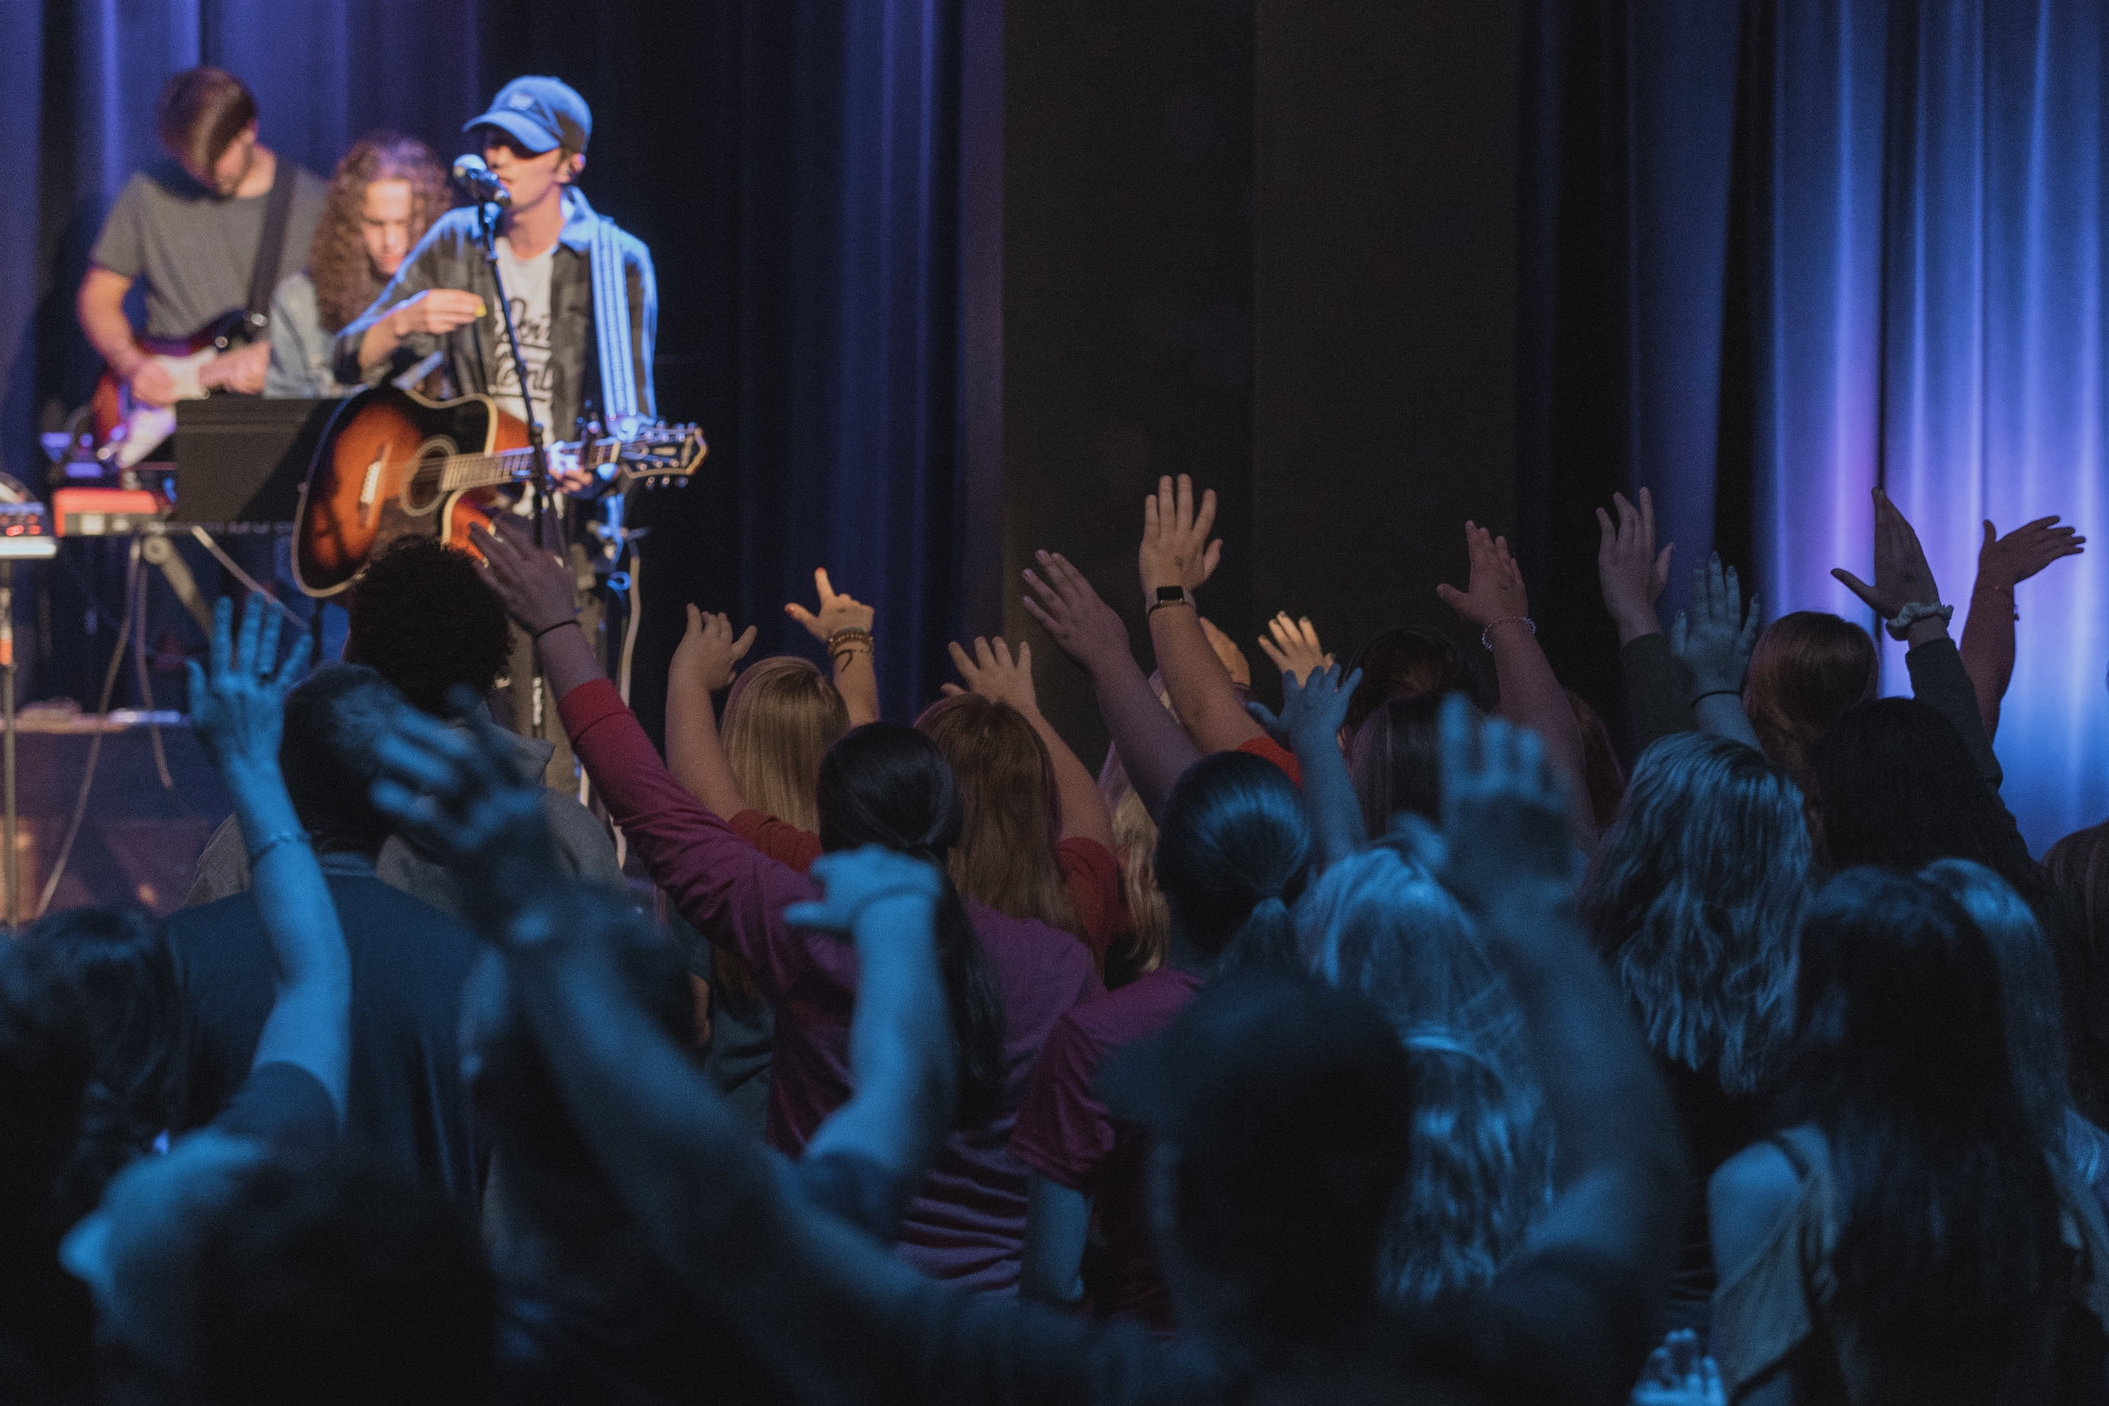 Live to Worship - We find life by bringing God glory through a living worship; reading his Word, praying to Him and singing about His greatness.